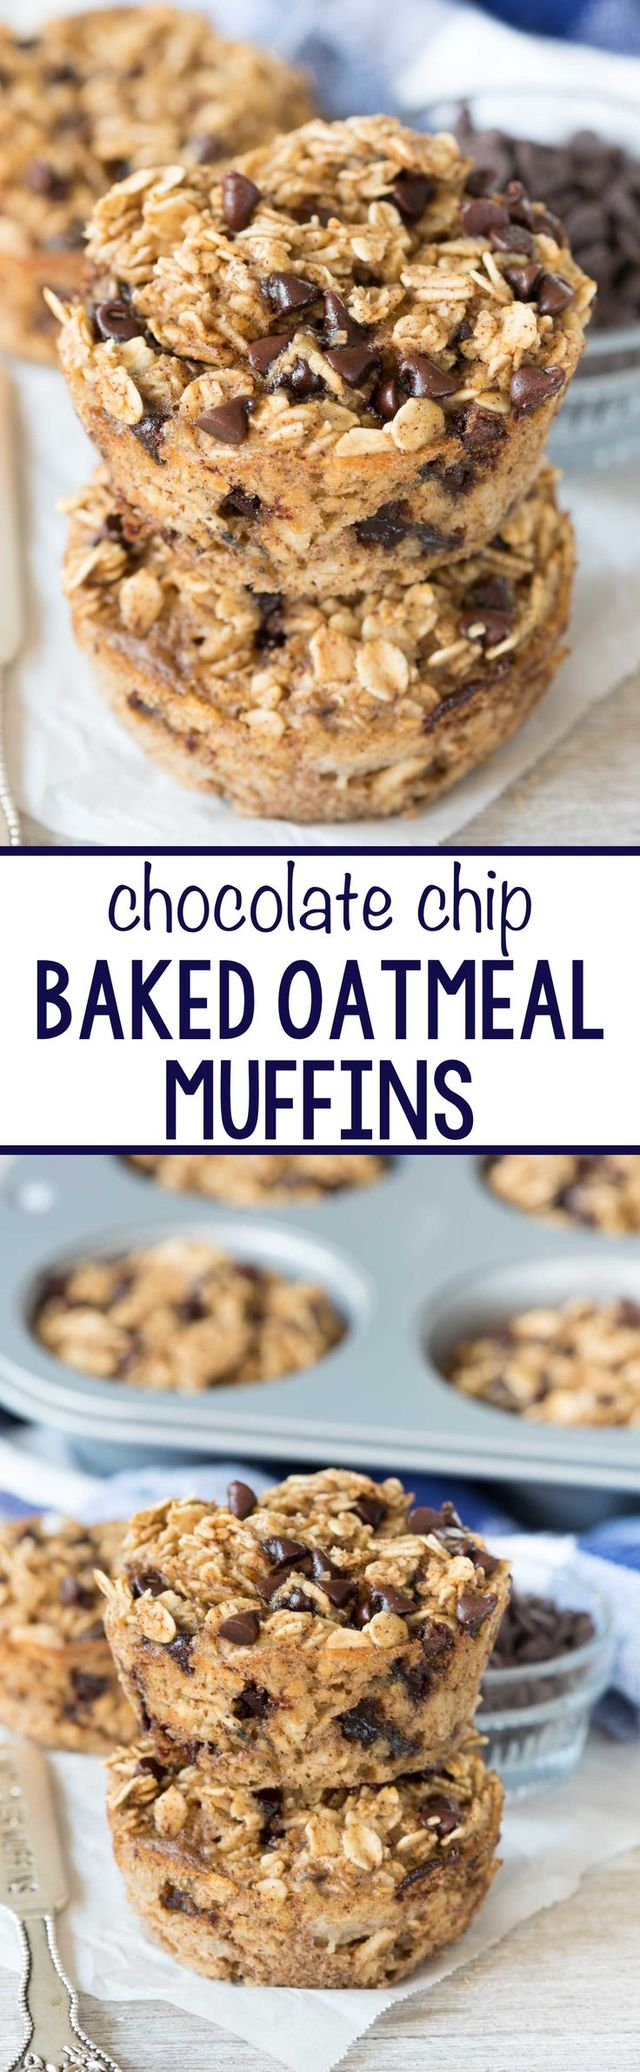 Chocolate Chip Baked Oatmeal Muffins - Chocolate Chip Baked Oatmeal Muffins - this EASY breakfast recipe is great for on the go! It's a healthier muffin that's dairy free and has no oil or flour but tastes like an amazing chocolate chip dessert!